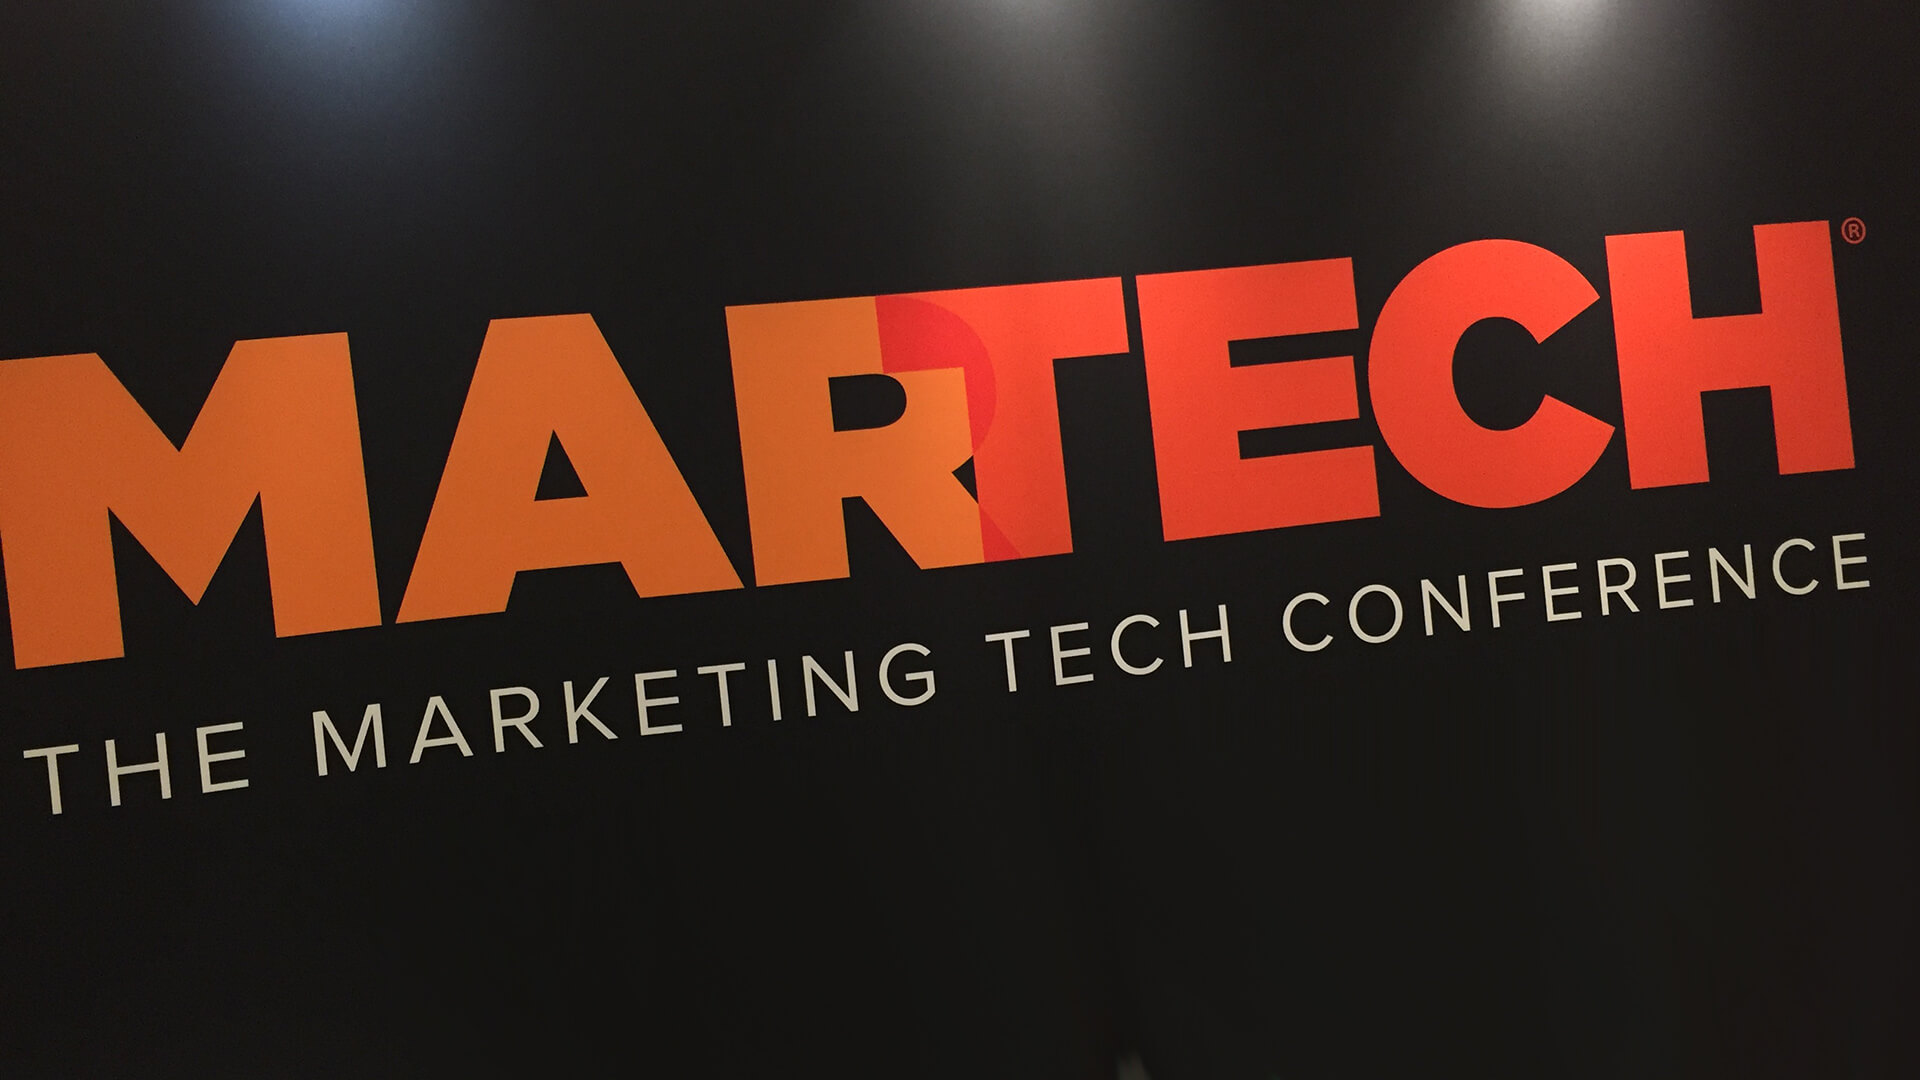 martech-conference-sign-1920